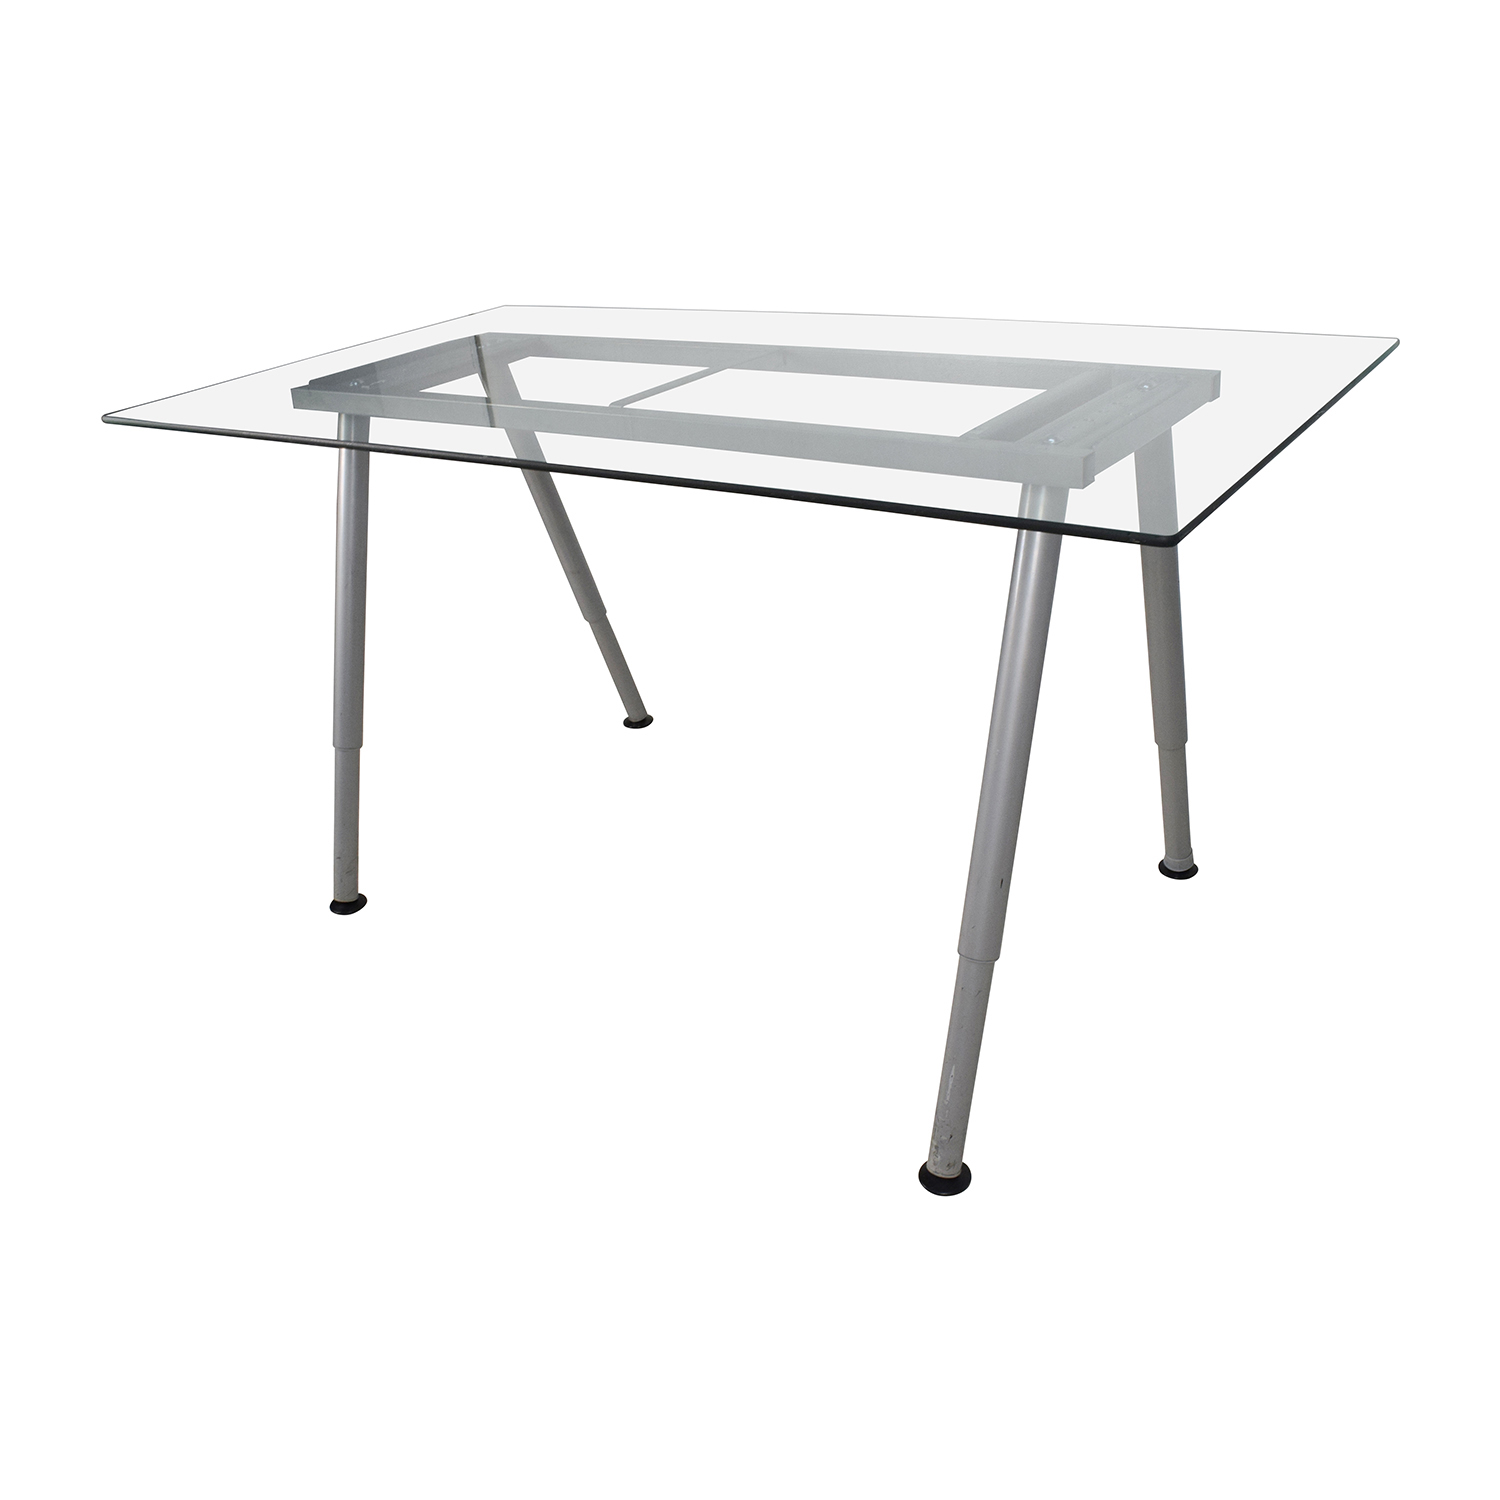 64% OFF Glass Top Trestle Table with Metal Base Tables